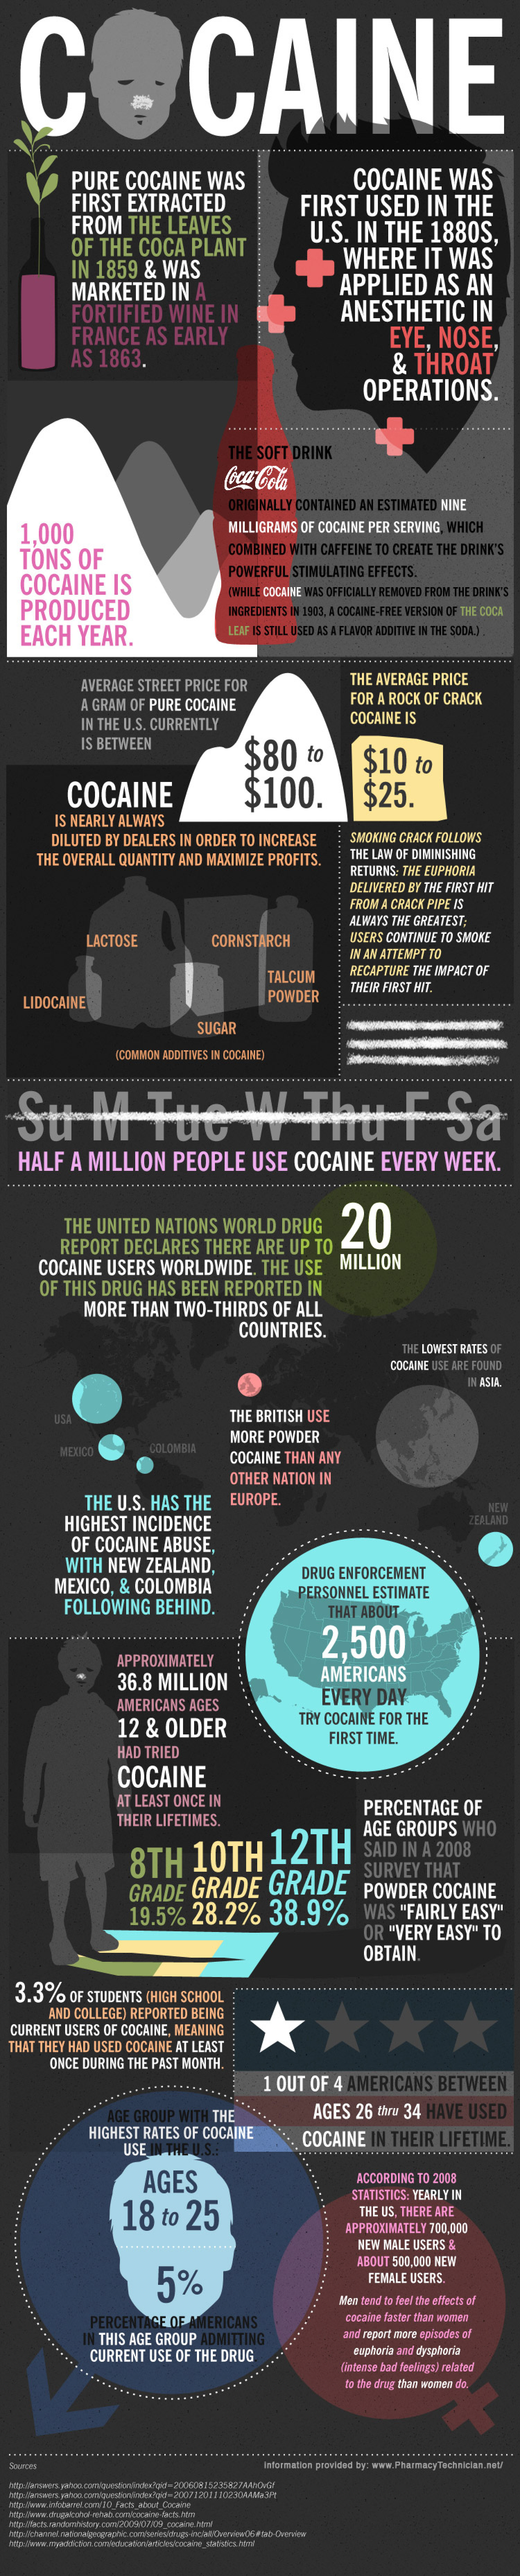 Cocaine Facts Infographic